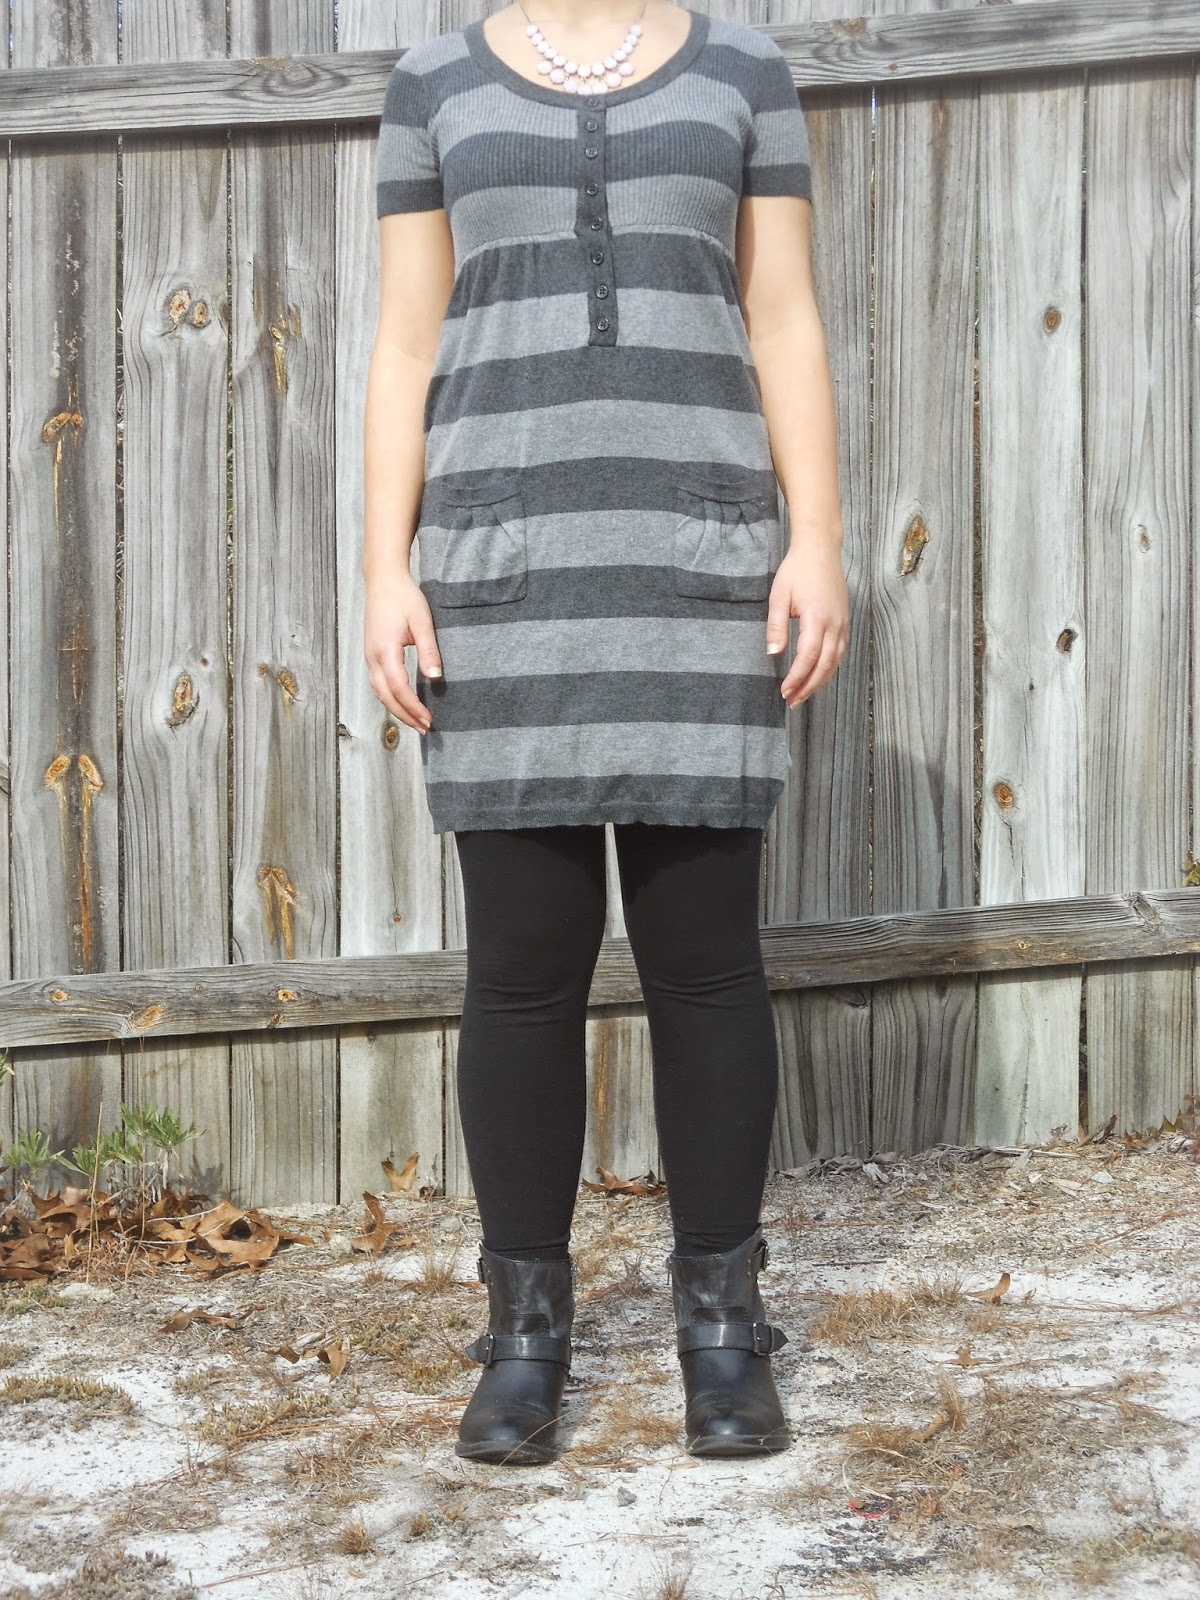 How to Wear a Dress in Winter || 05. Grey sweater dress, black leggings, black ankle boots, statement necklace